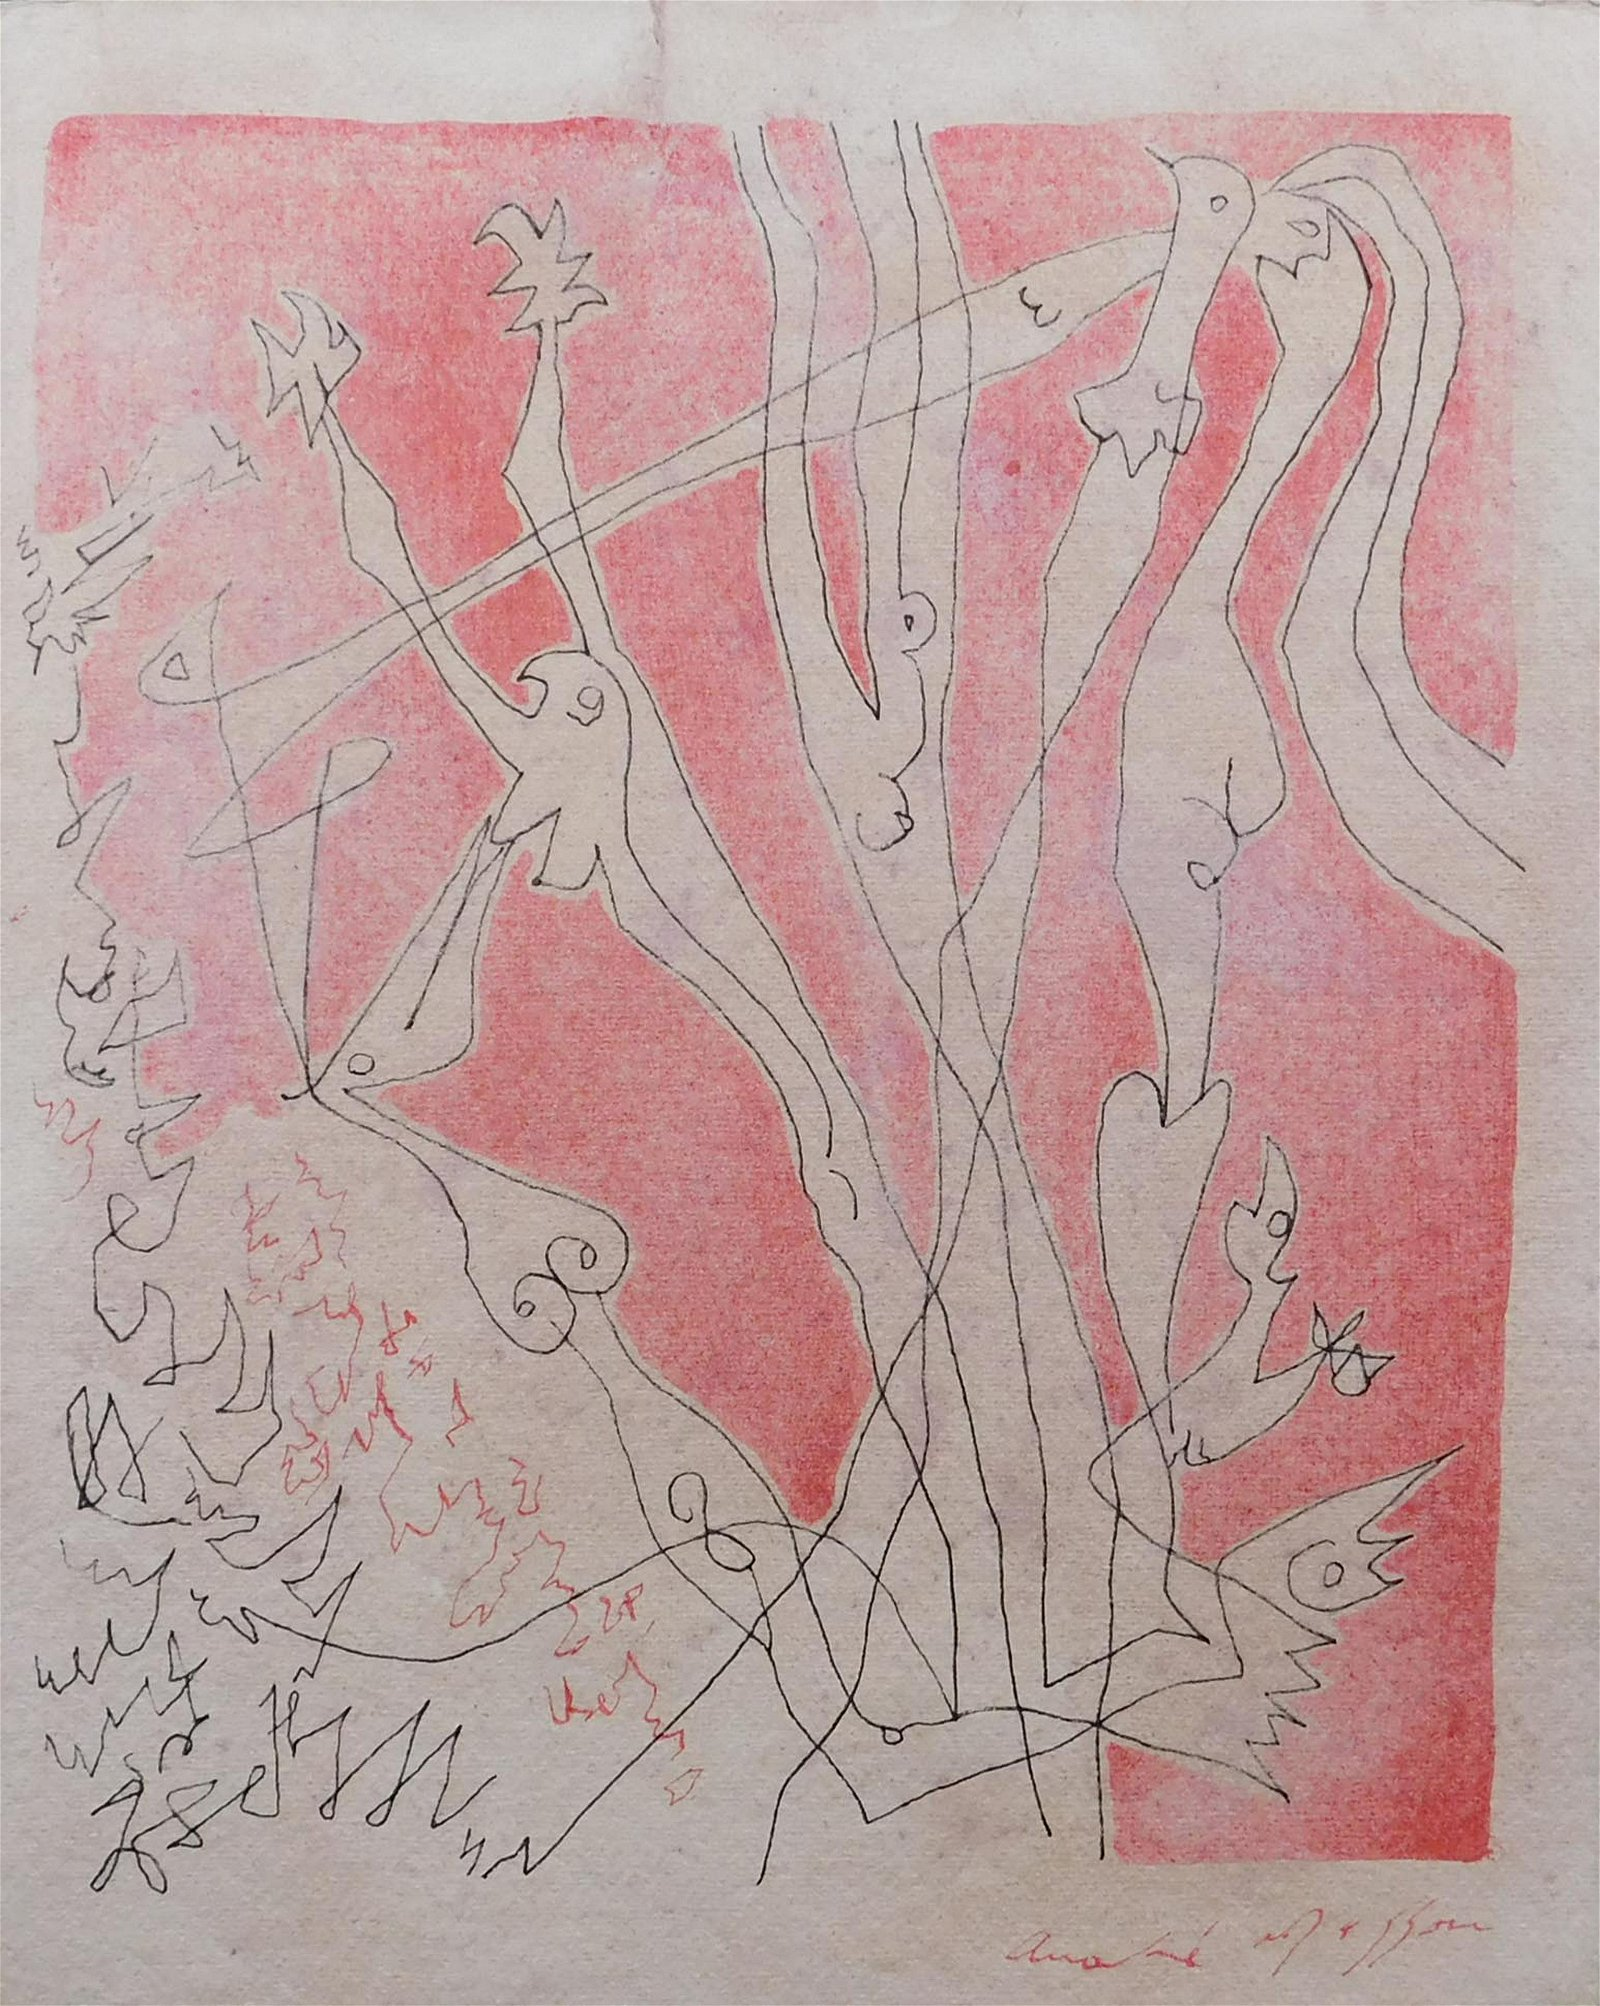 Andre Masson: Surreal Figures in Red and Black